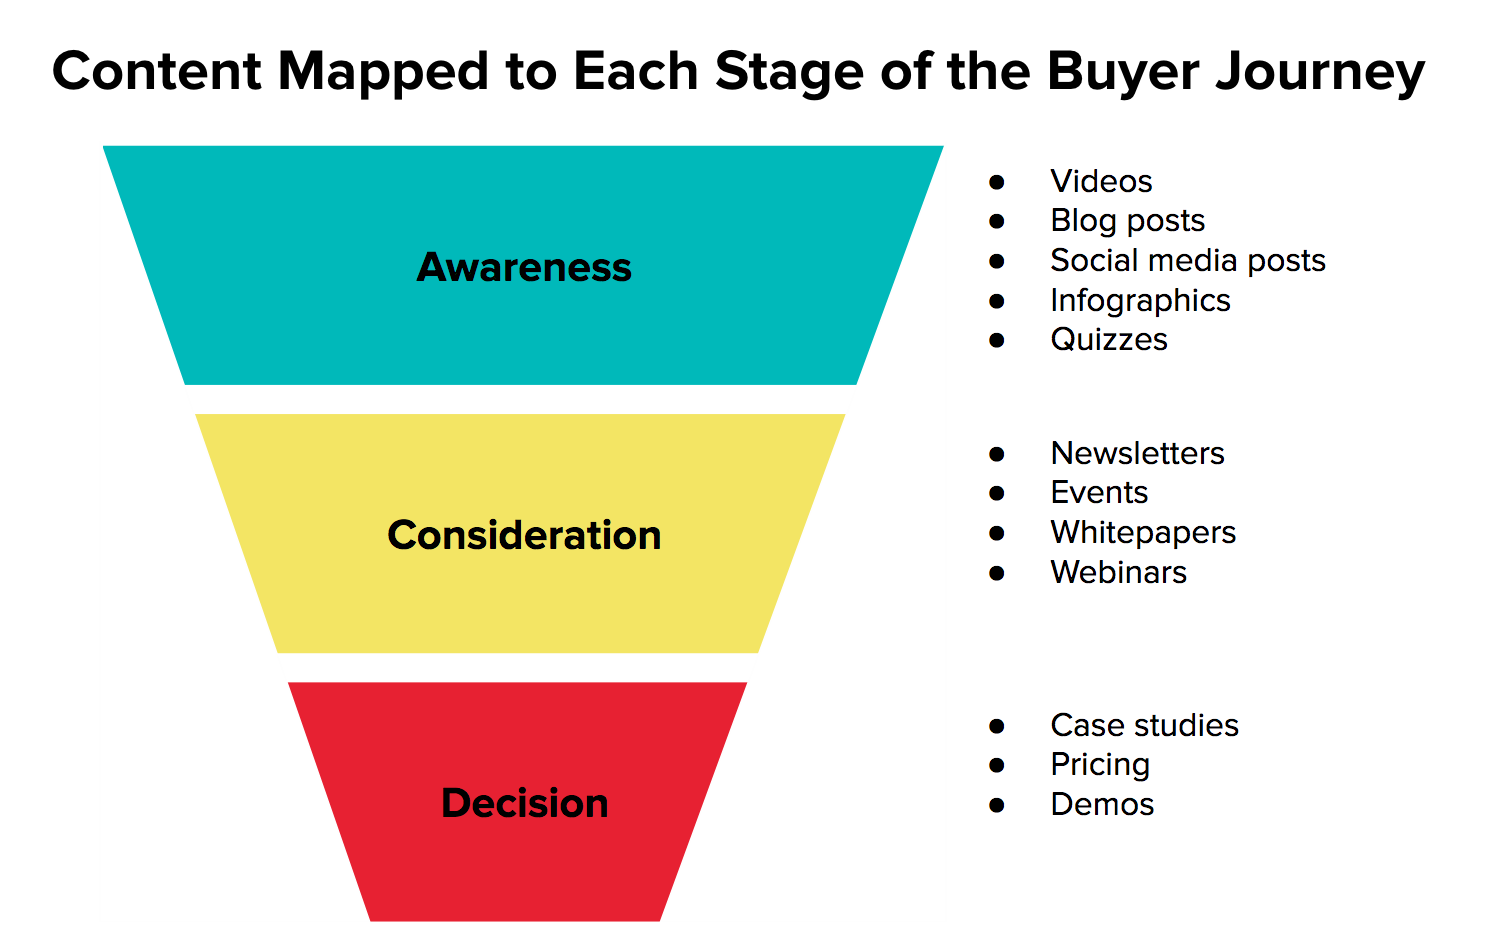 Content Mapped to Buyer Journey.png